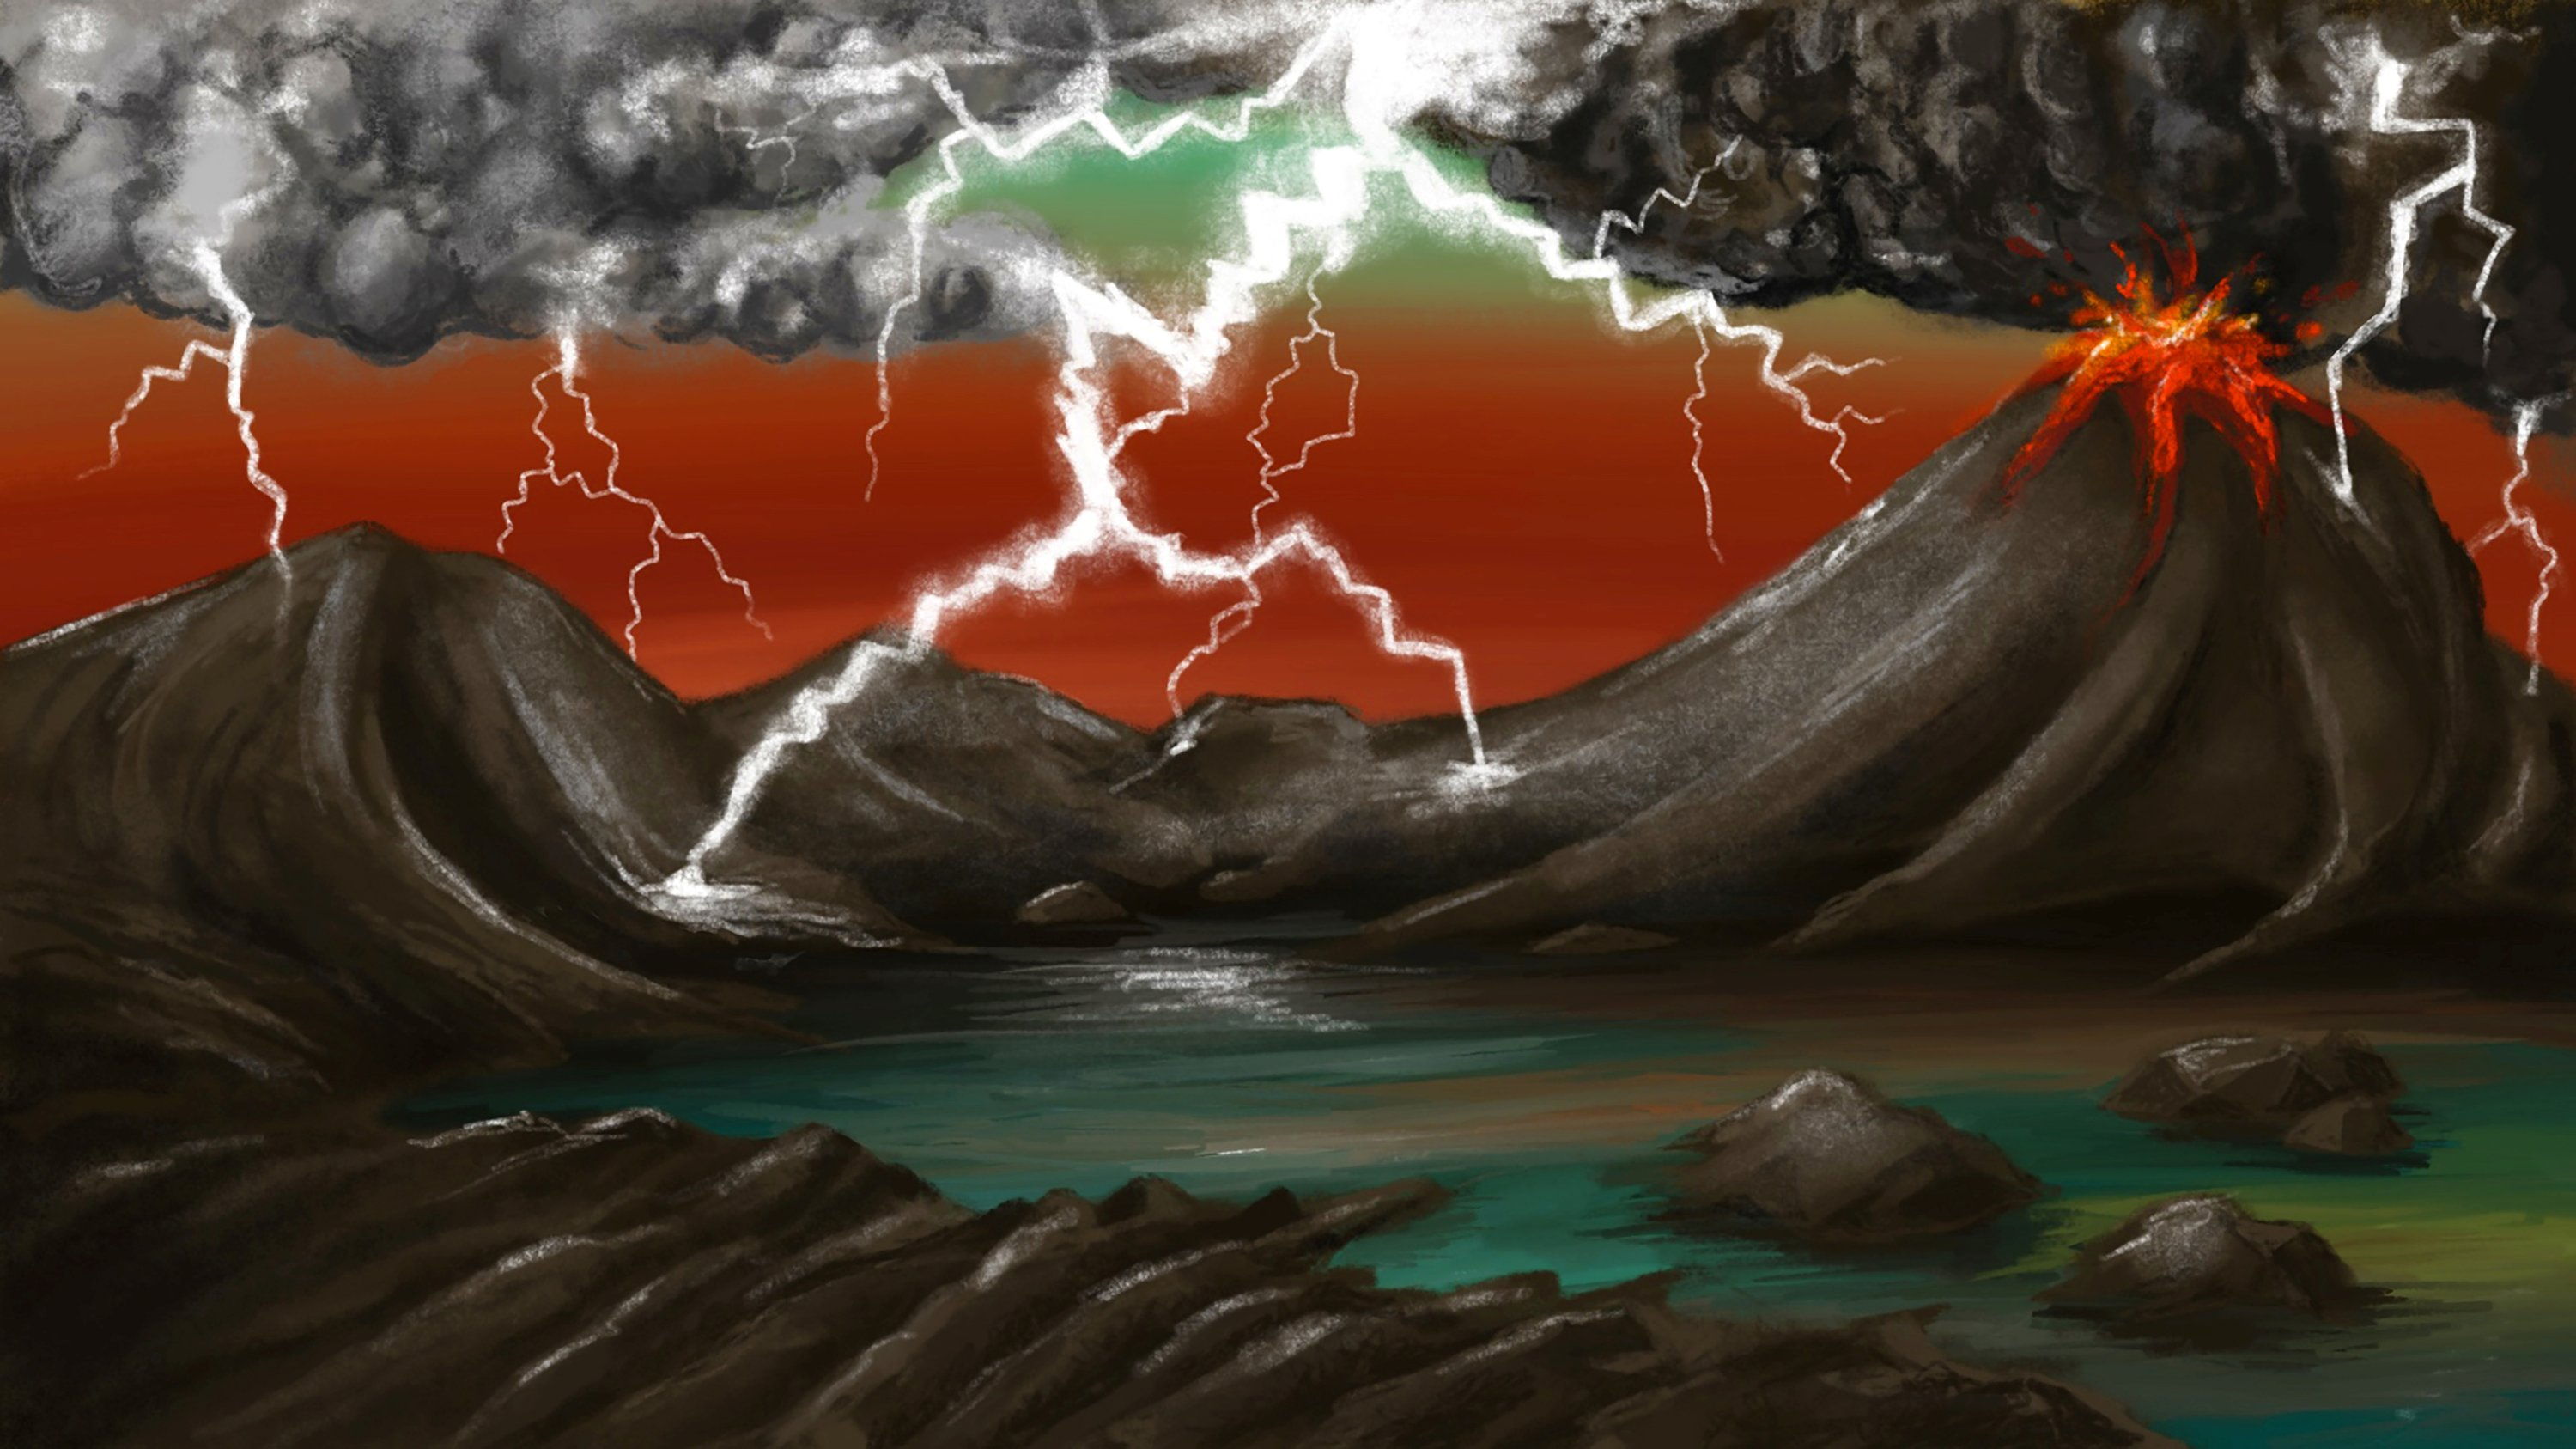 An artist's rendition shows the early Earth environment, as lightning generated by storms and volcanic plumes frequently struck volcanic rocks. (Lucy Entwisle via Reuters)